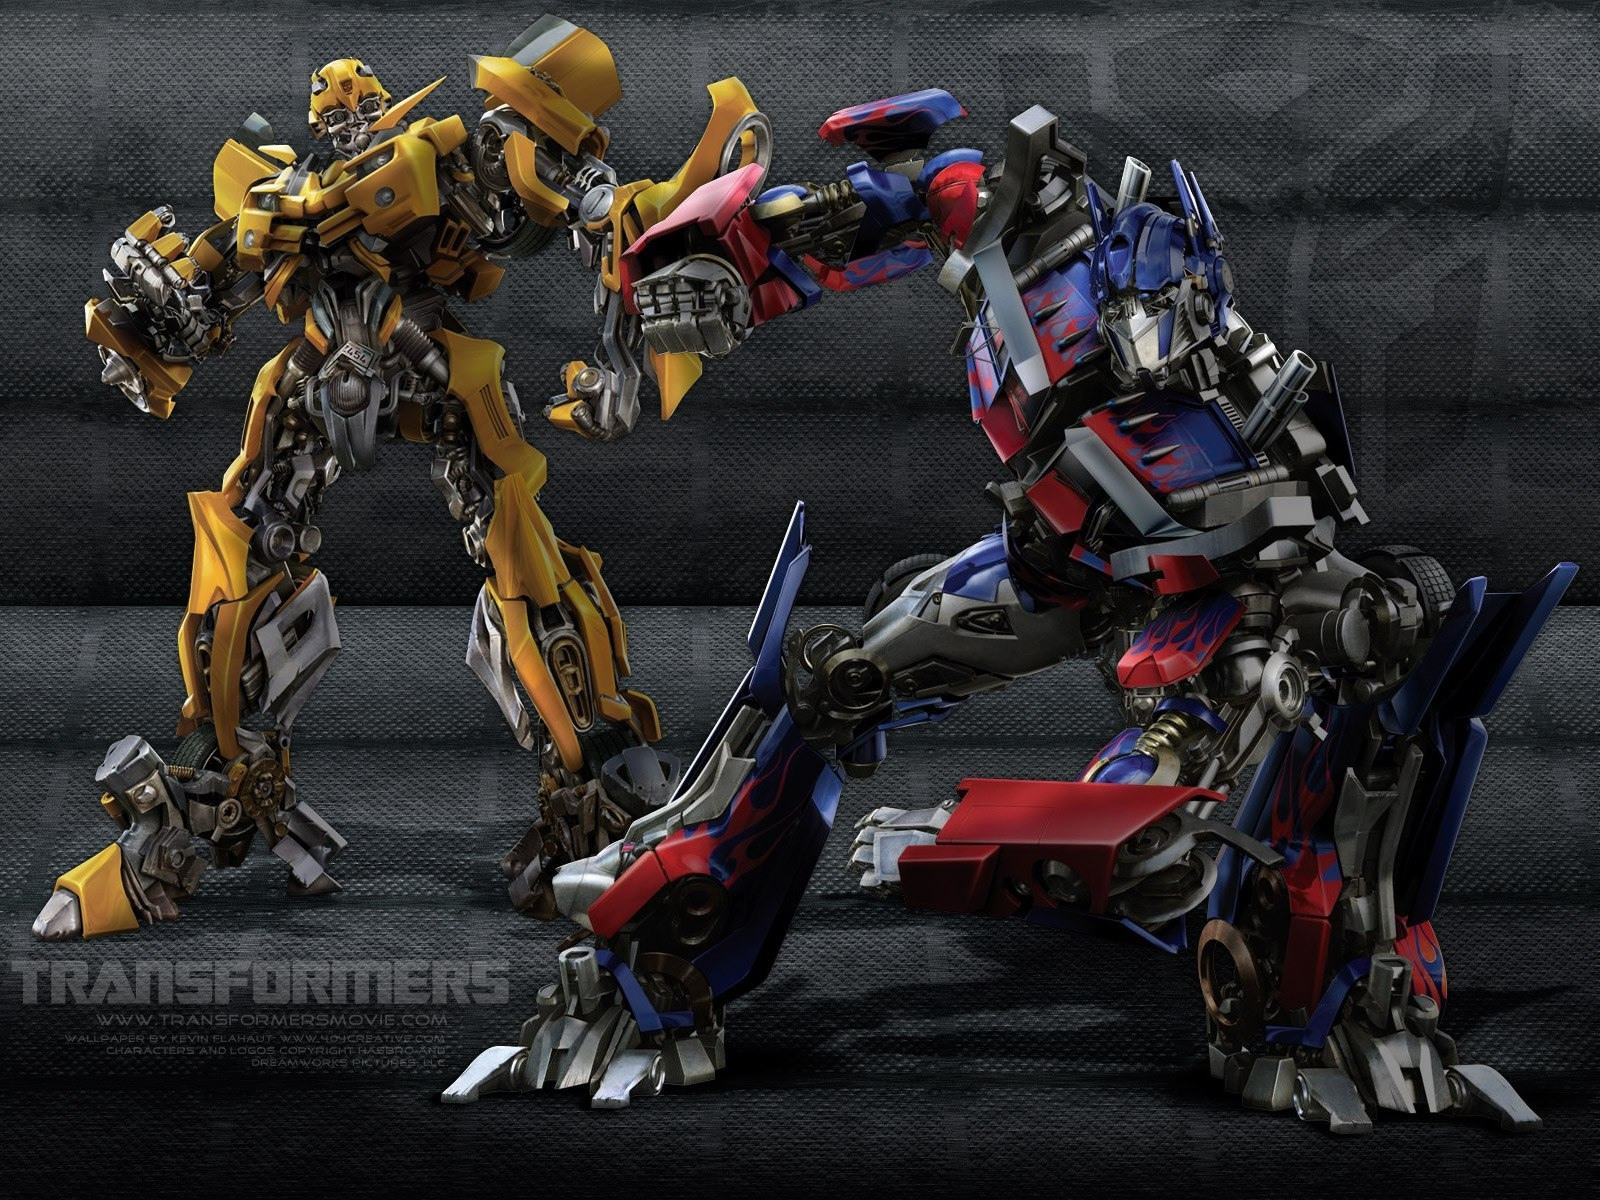 transformers2 optimus prime wallpaper